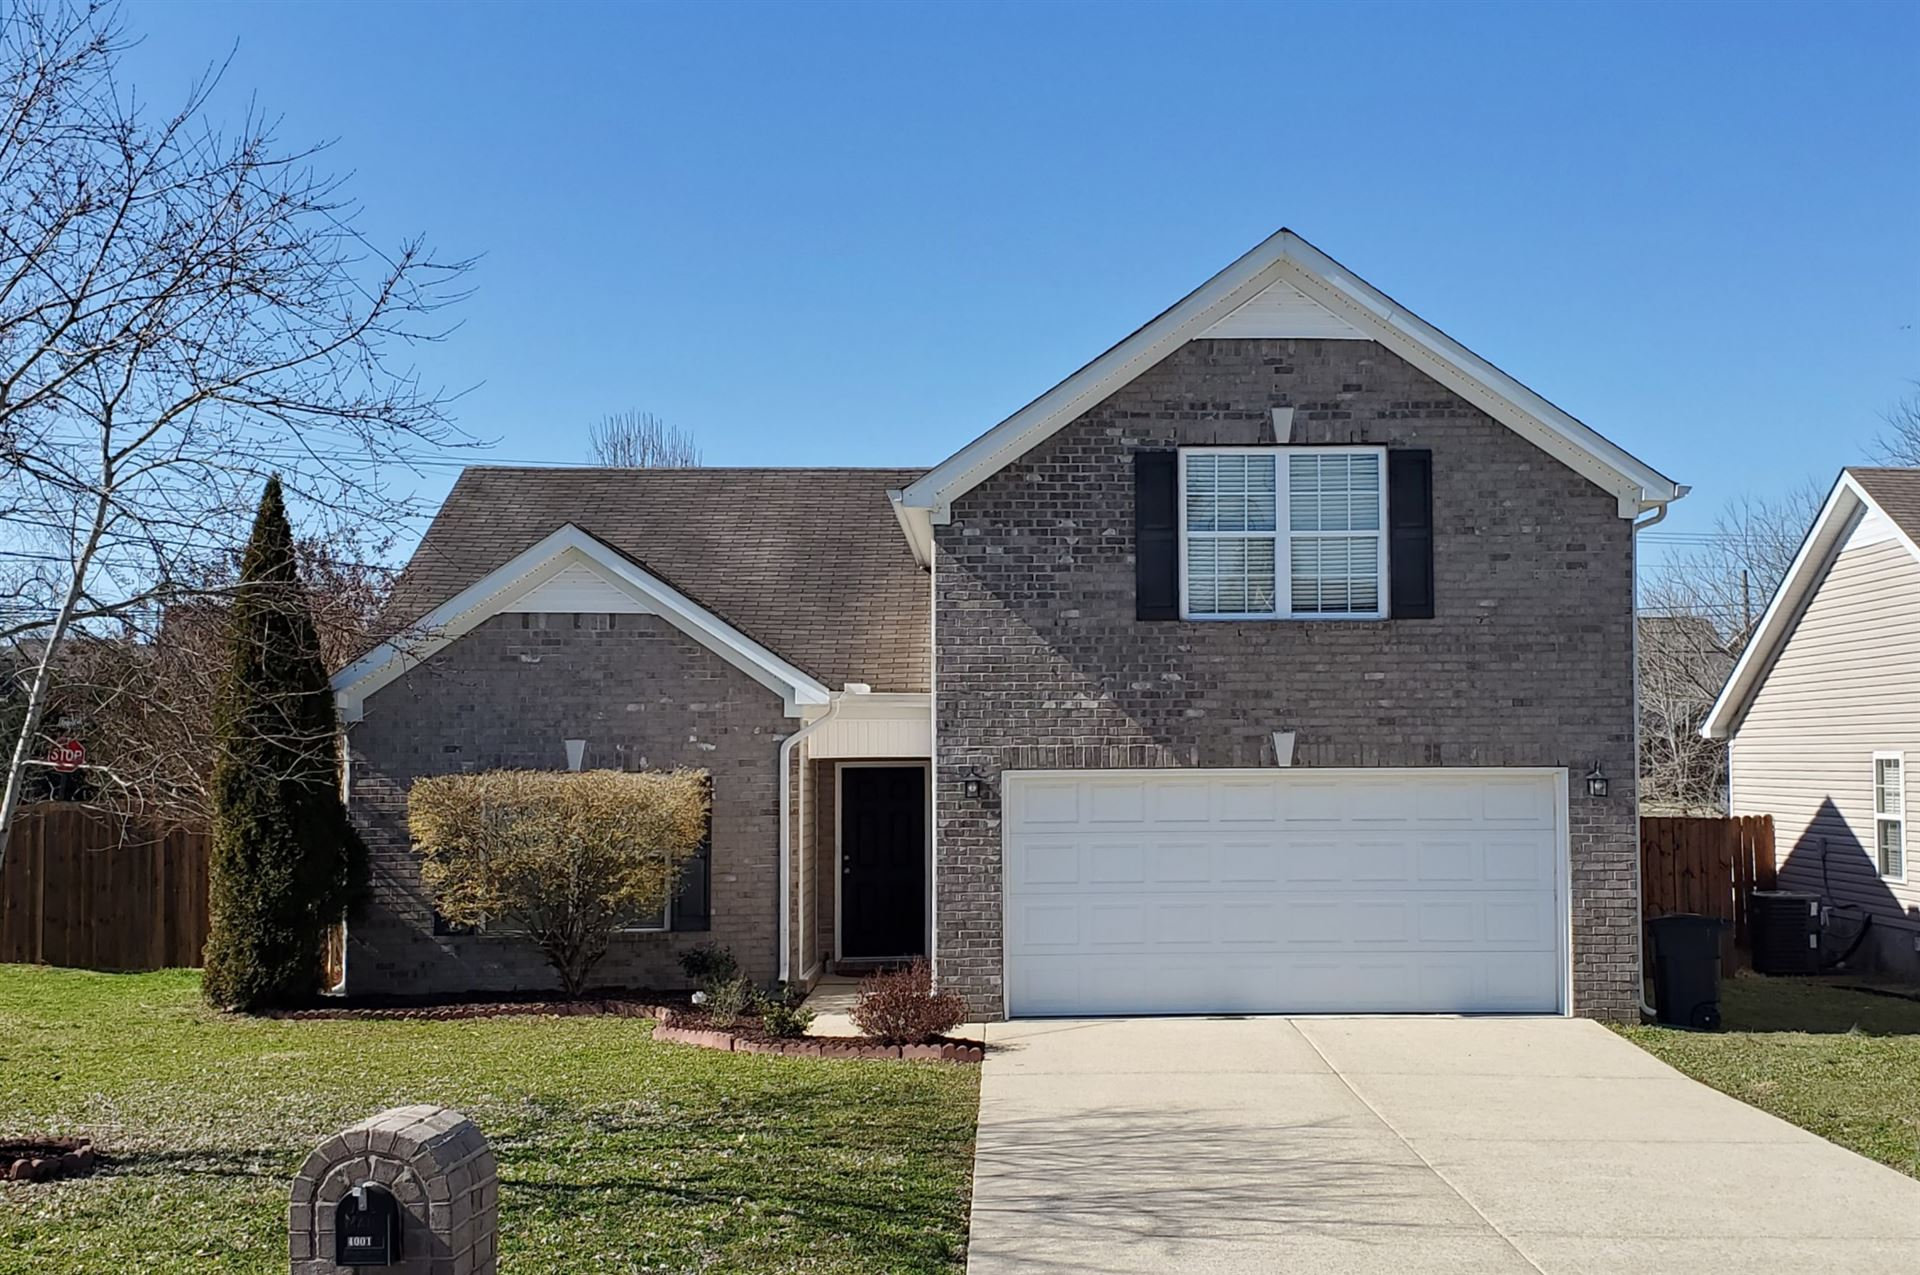 Photo of 4001 Deer Run Trce, Spring Hill, TN 37174 (MLS # 2230737)